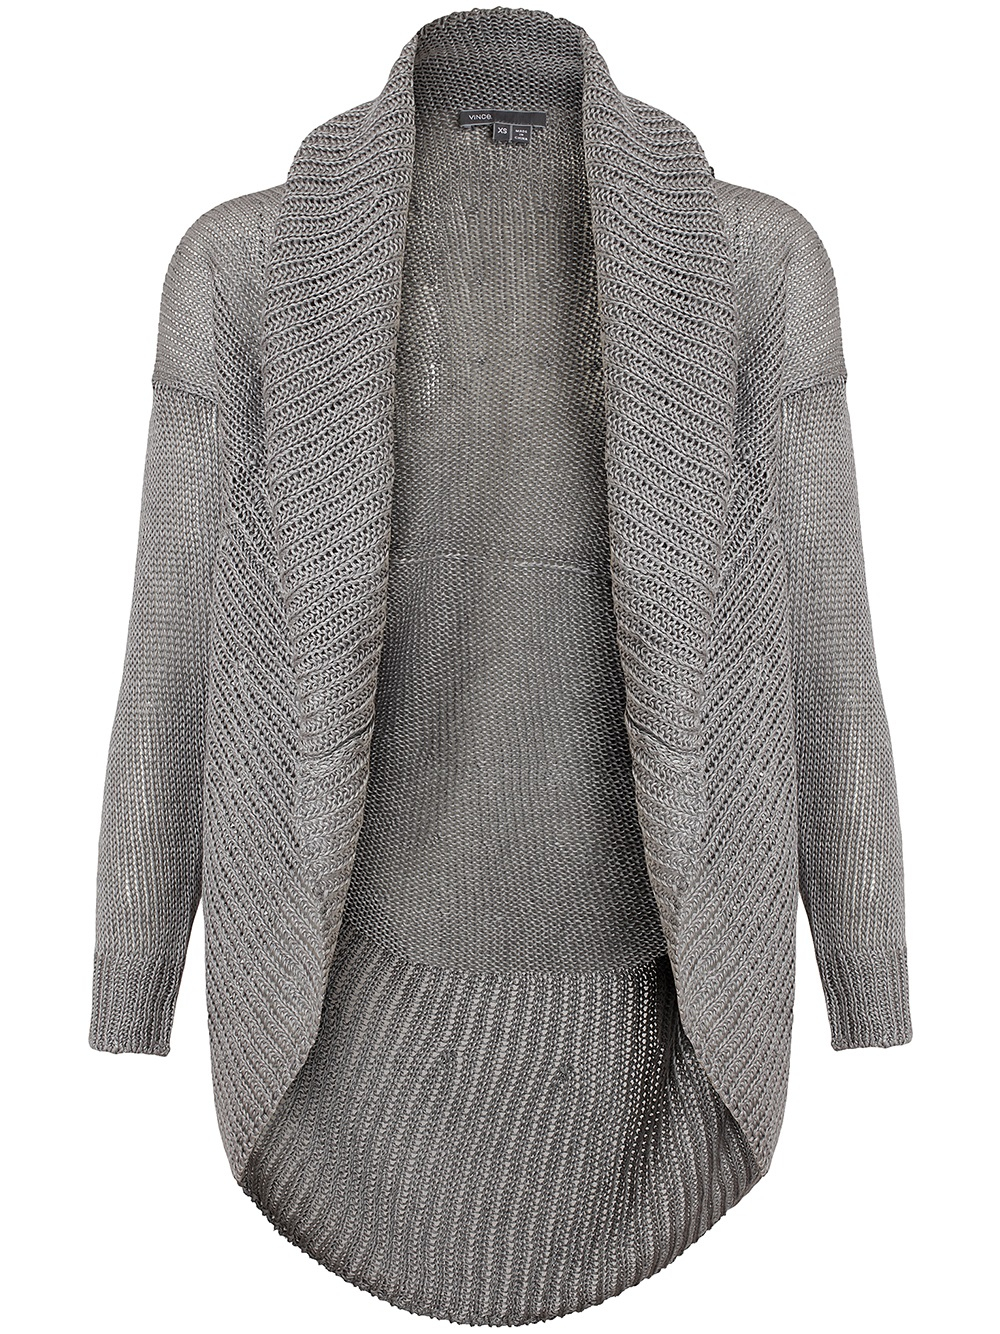 Vince Knitted Linen Circle Cardigan in Gray (grey) Lyst